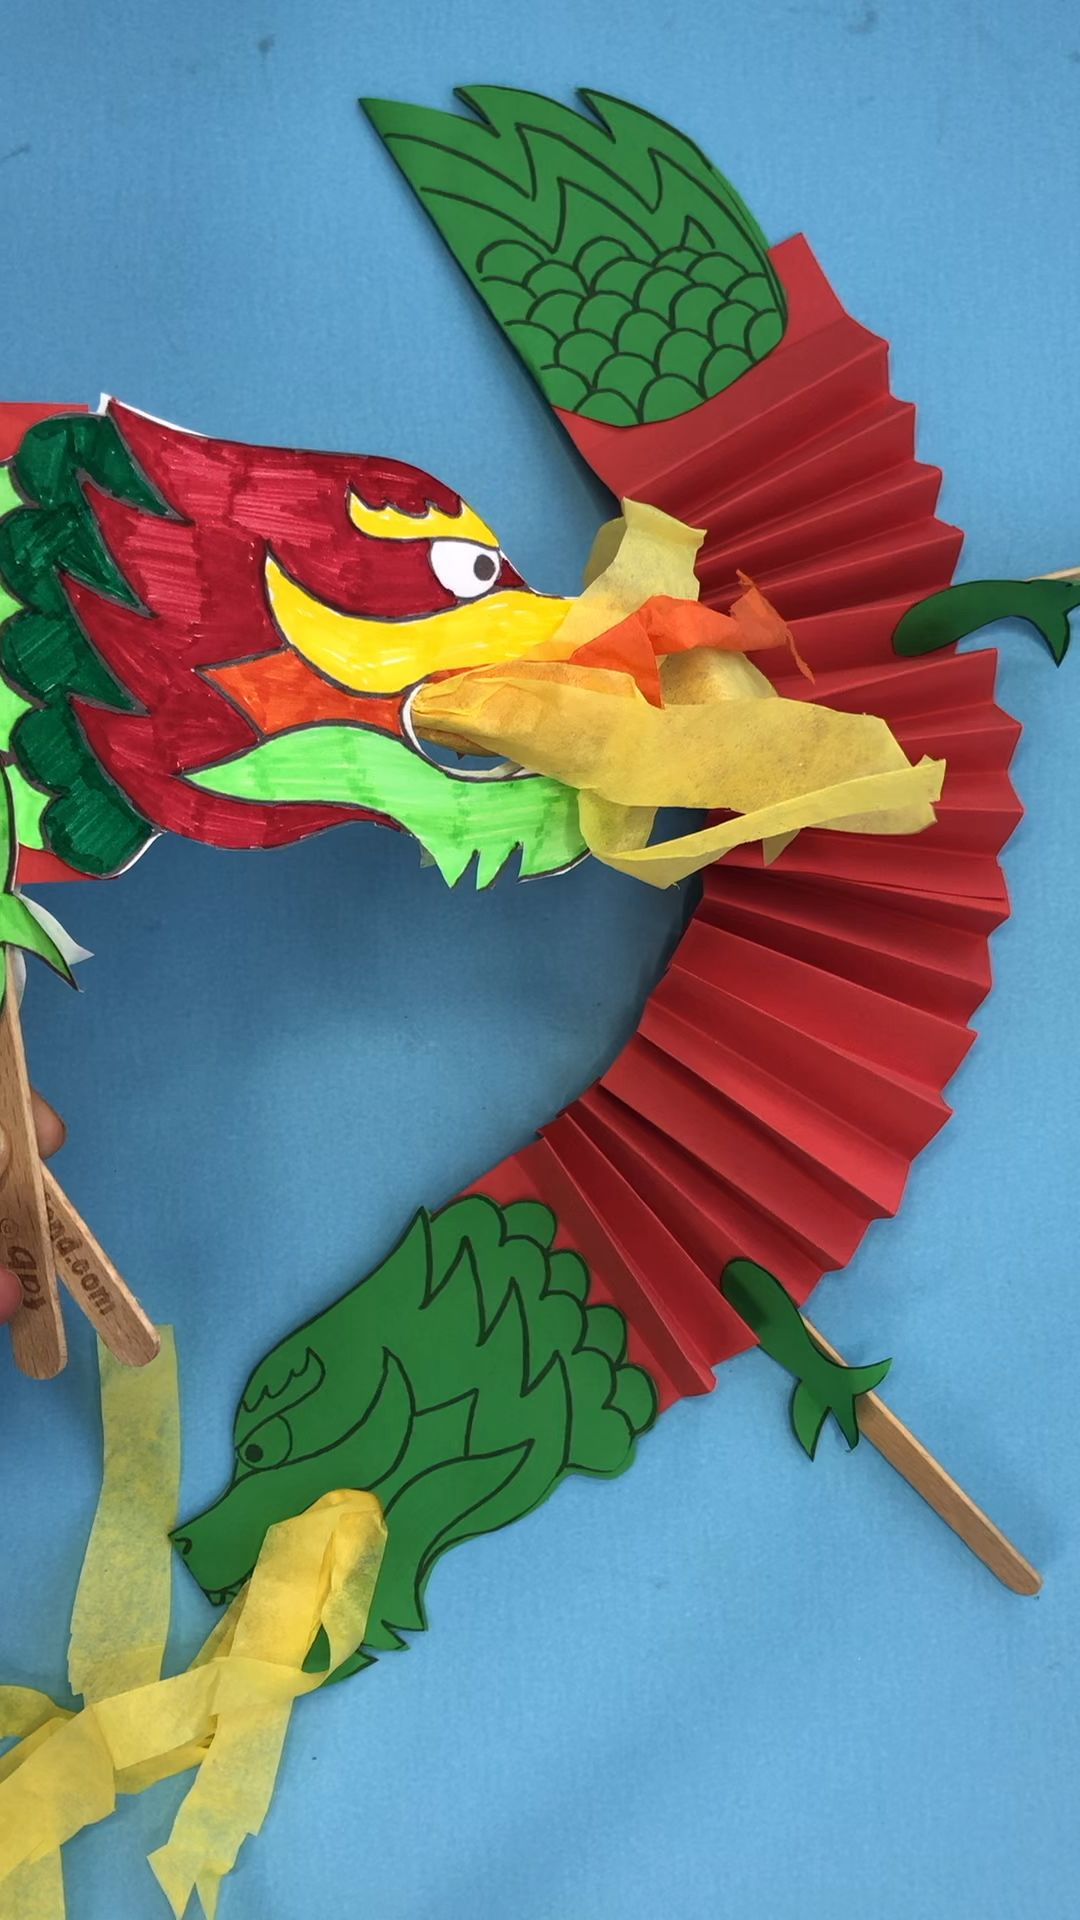 Chinese New Year Craft Dragon Puppet Printable Video Video New Year S Crafts Dragon Crafts Chinese New Year Crafts